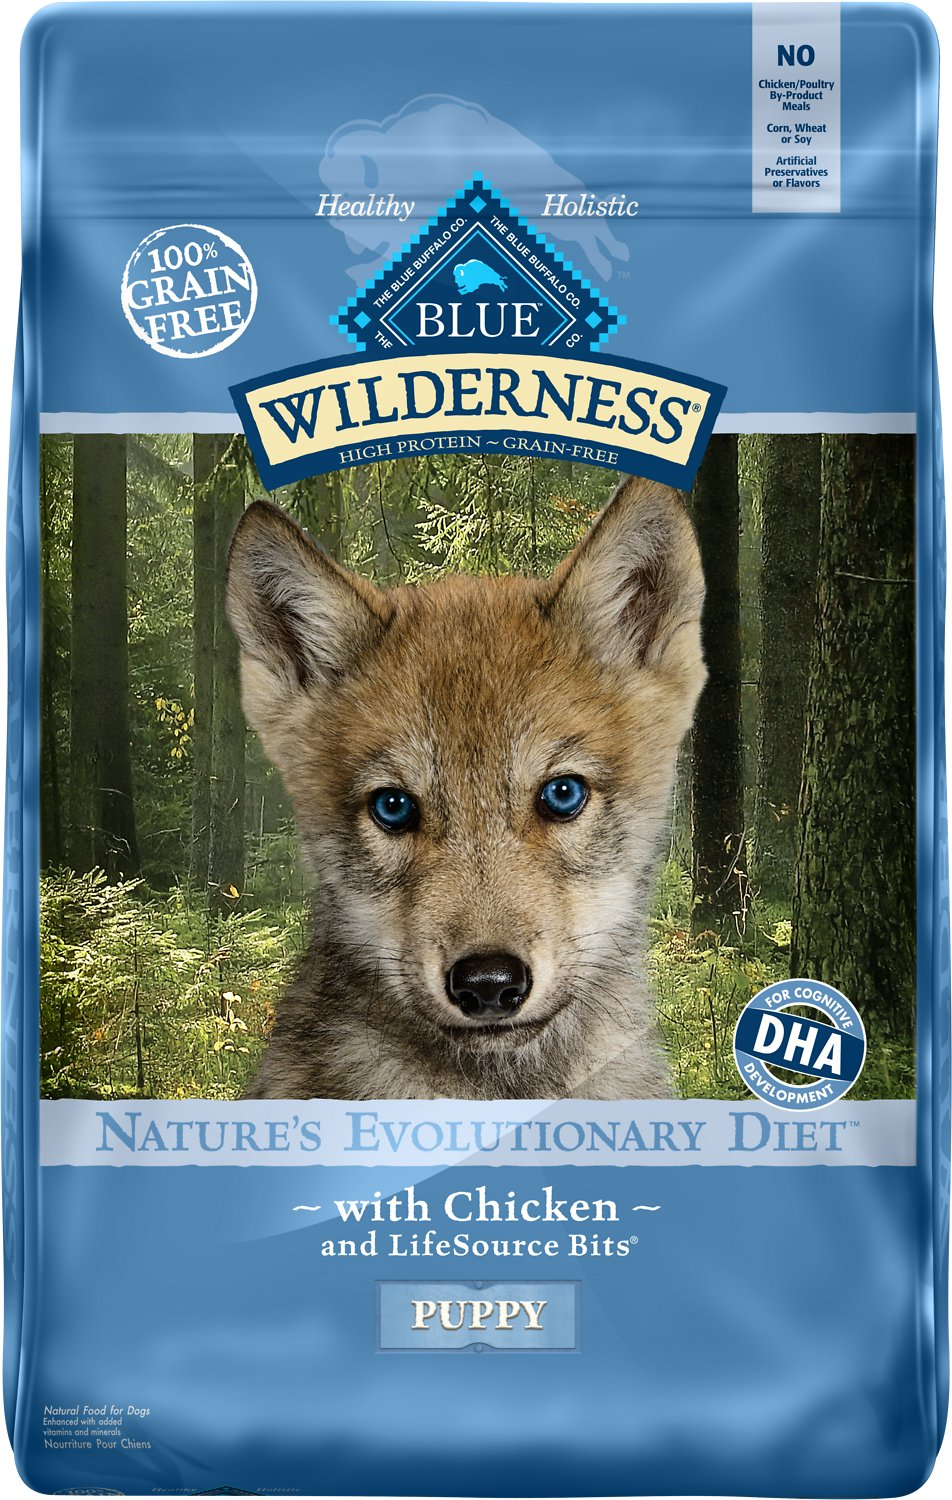 Blue Buffalo Wilderness Puppy Chicken Recipe Grain-Free Dry Dog Food Image